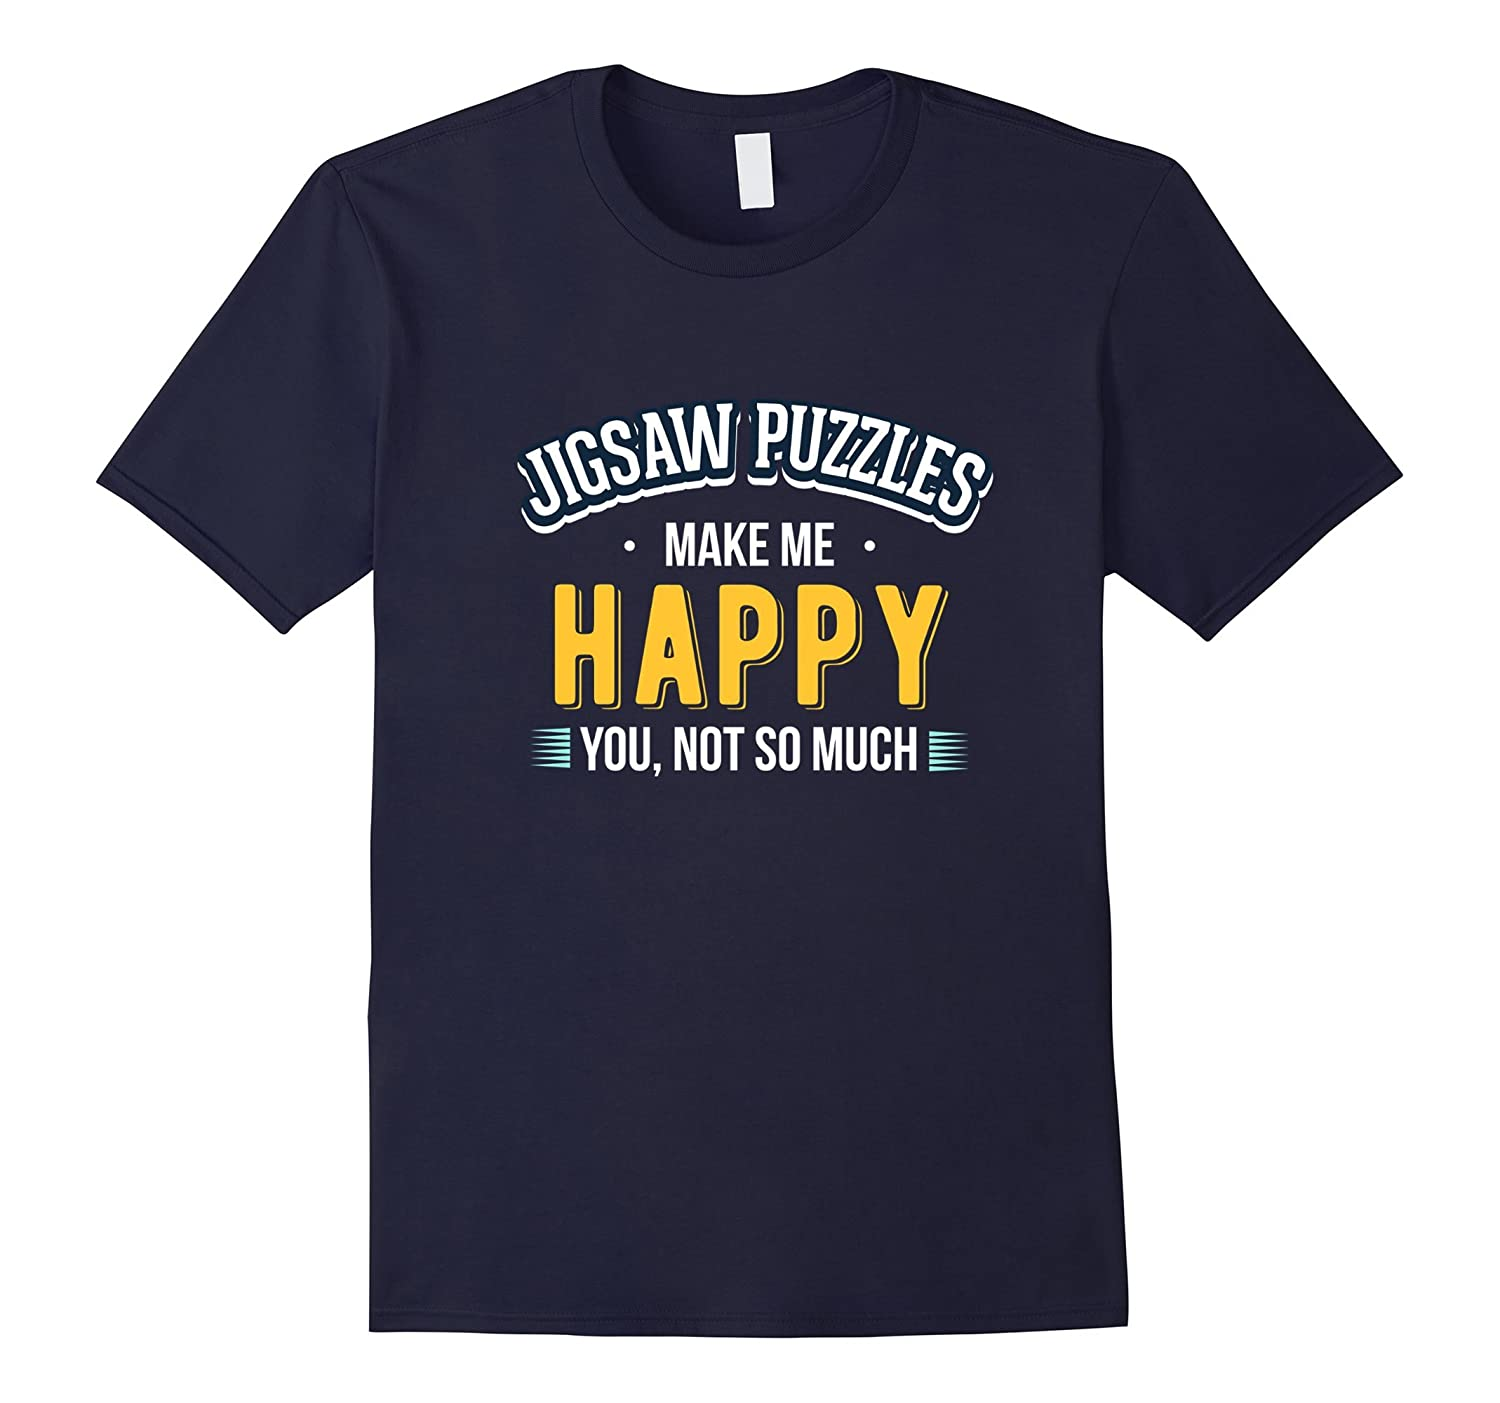 Jigsaw Puzzles Makes Me Happy You Not Much T-Shirt-PL